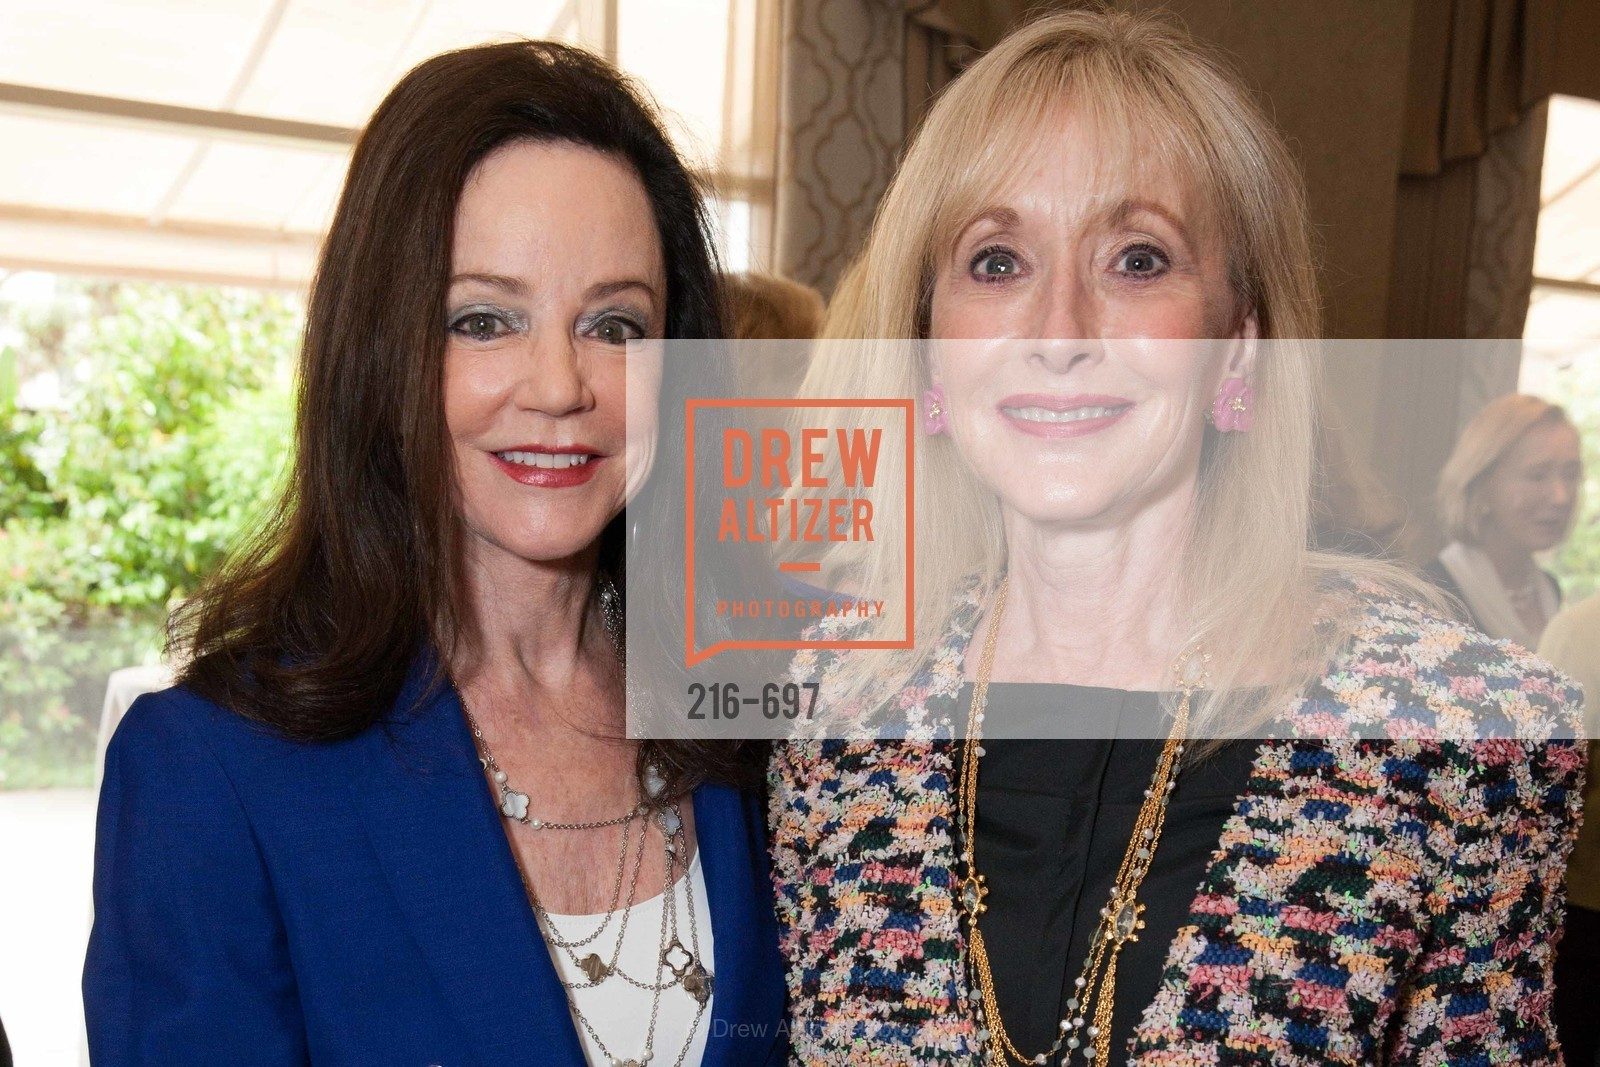 Gail DeMartini, Merrill Kasper, JUNIOR LEAGUE OF SAN FRANCISCO's WATCH Luncheon, US, May 5th, 2015,Drew Altizer, Drew Altizer Photography, full-service agency, private events, San Francisco photographer, photographer california